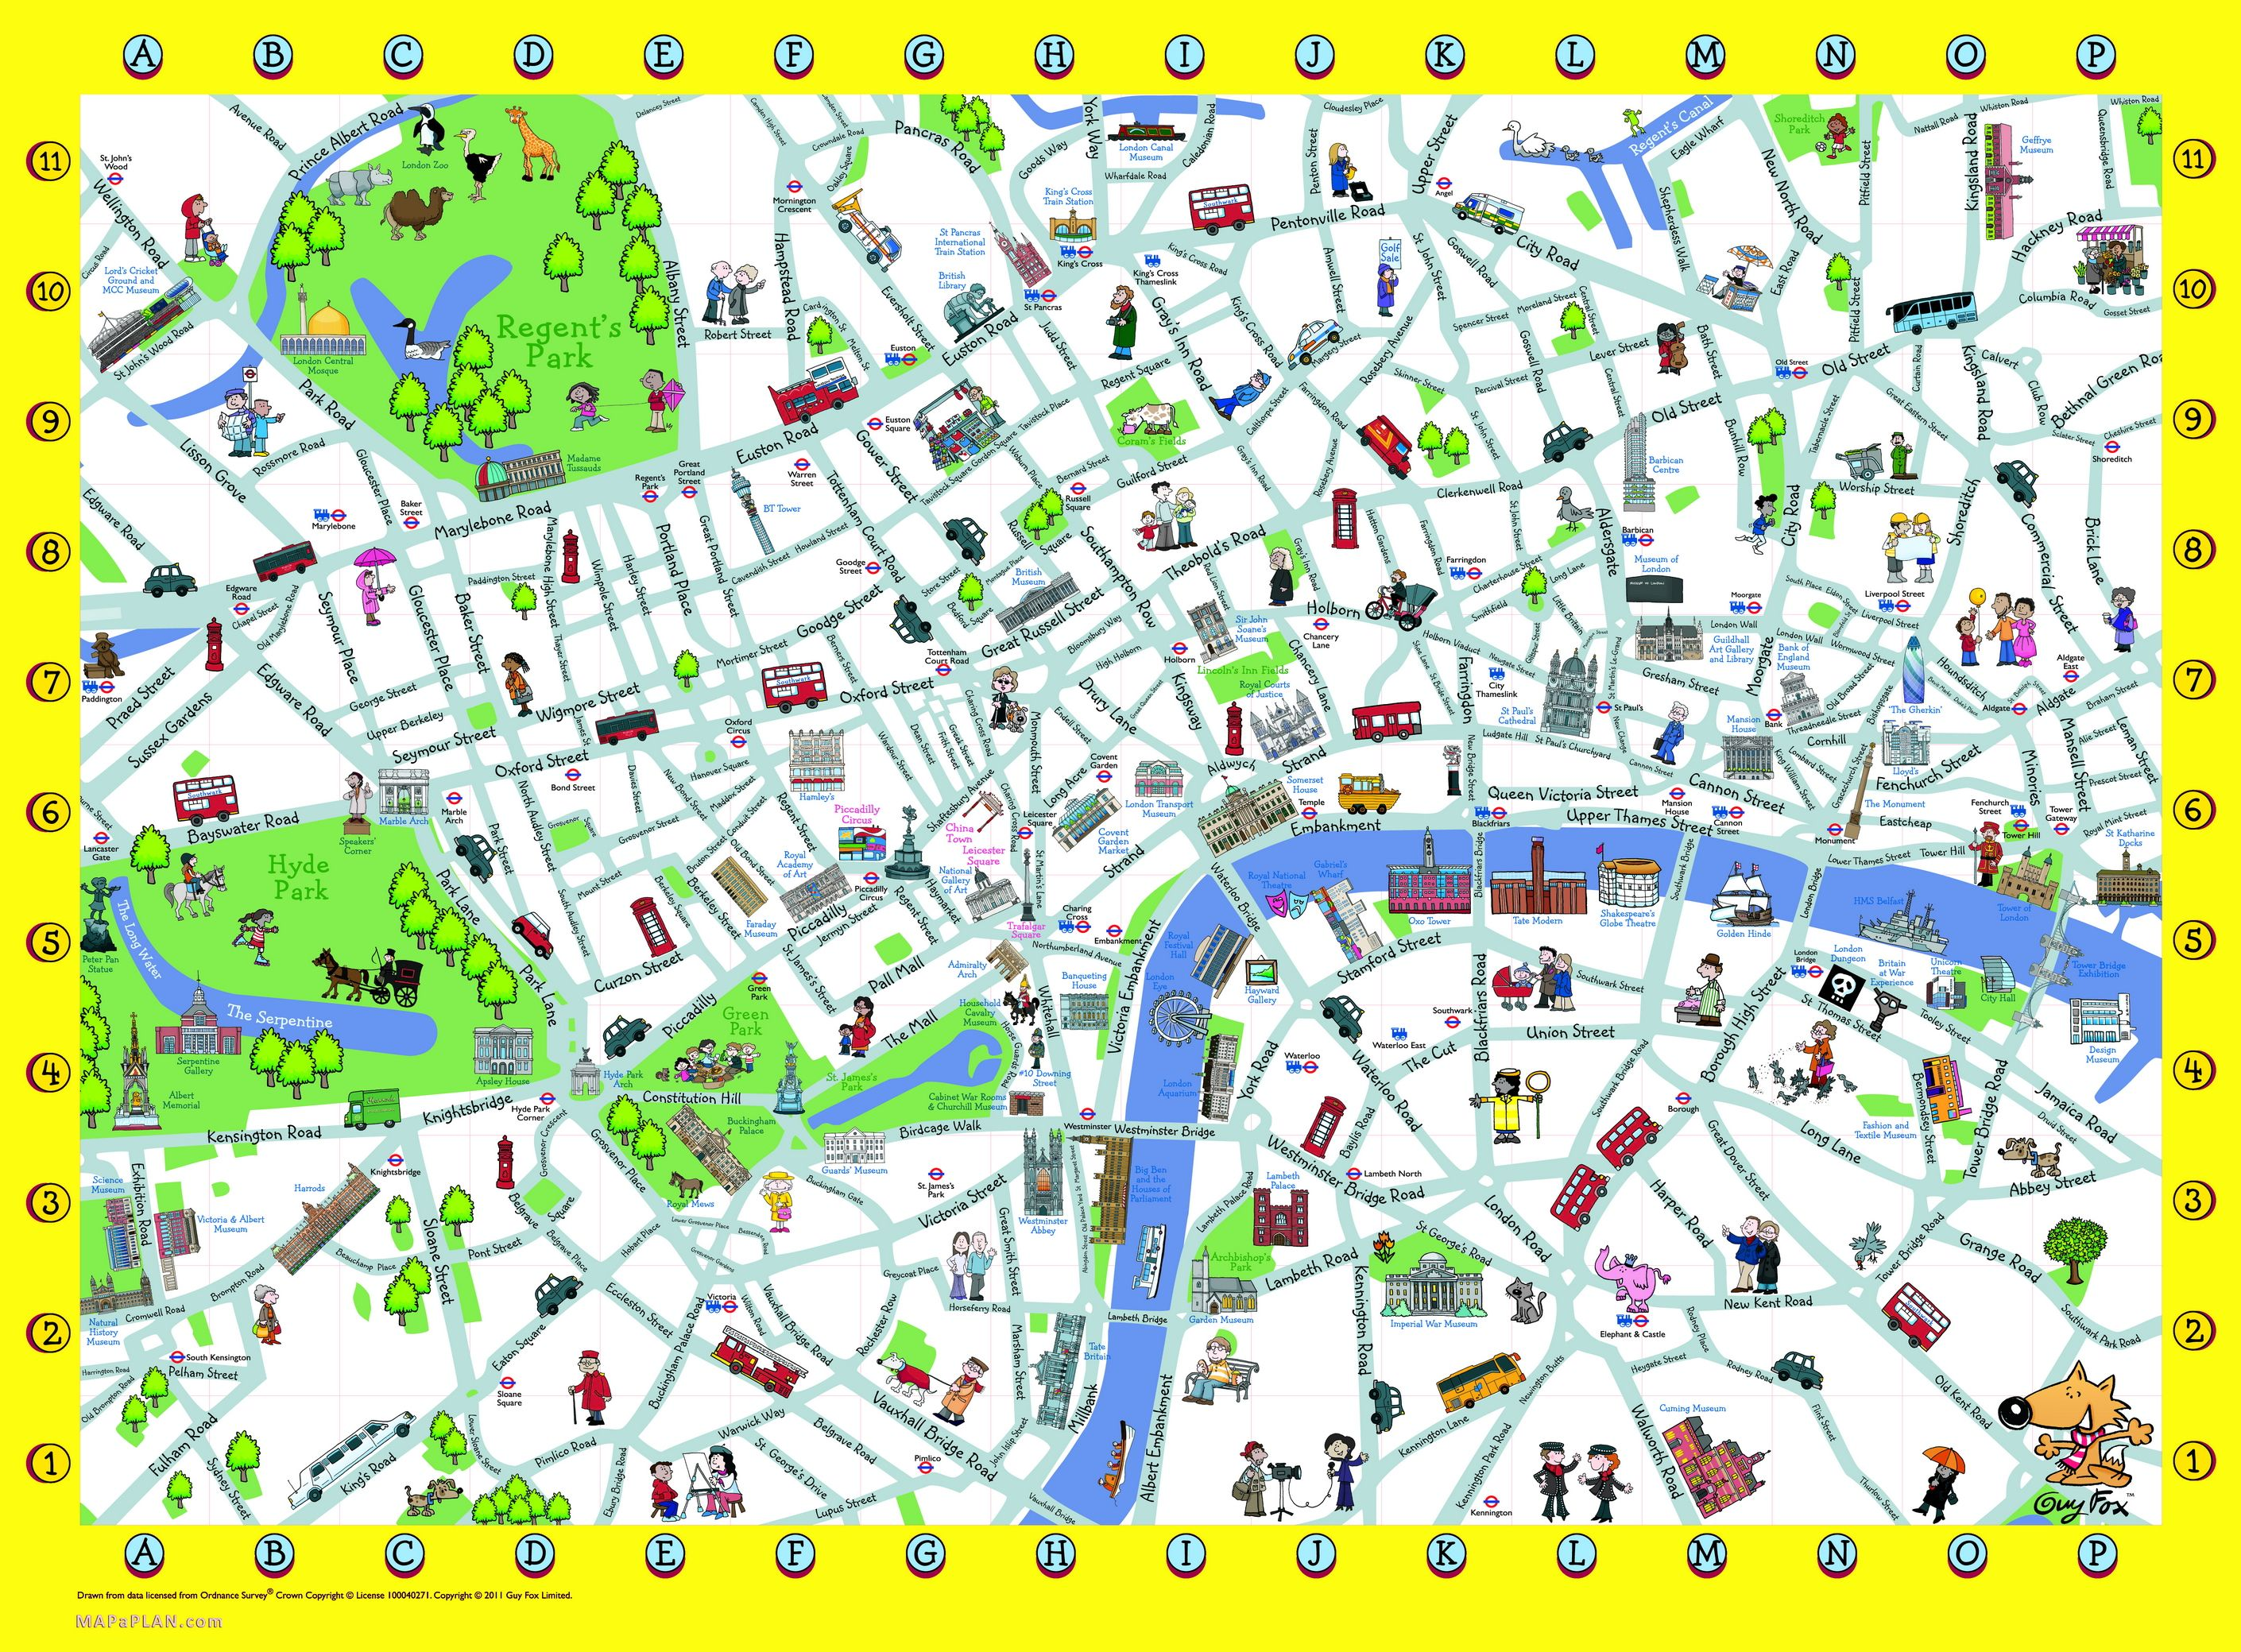 London Free Map.London Detailed Landmark Map London Maps Top Tourist Attractions